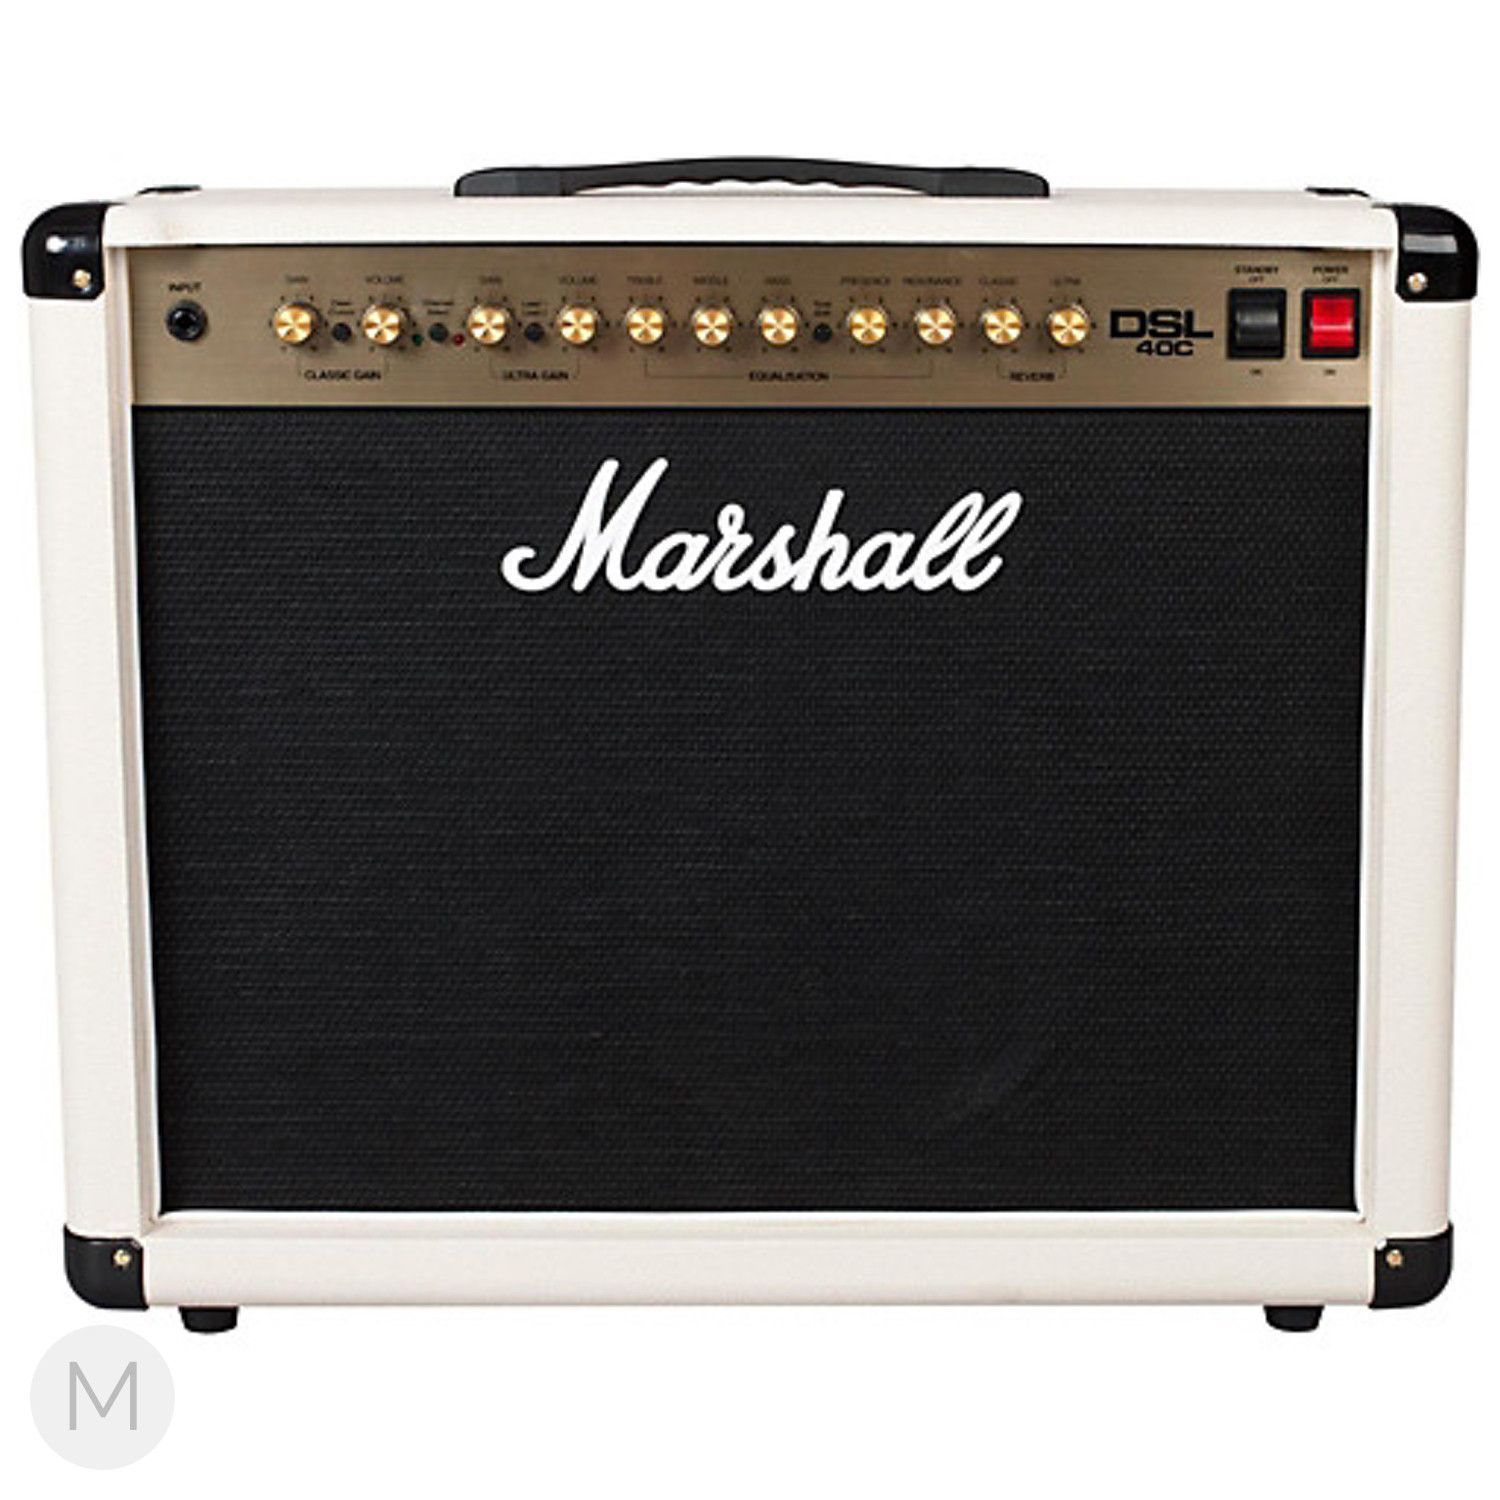 marshall dsl40c limited edition 39 silver jubilee style 39 all tube 40w 1x12 celestion speaker. Black Bedroom Furniture Sets. Home Design Ideas